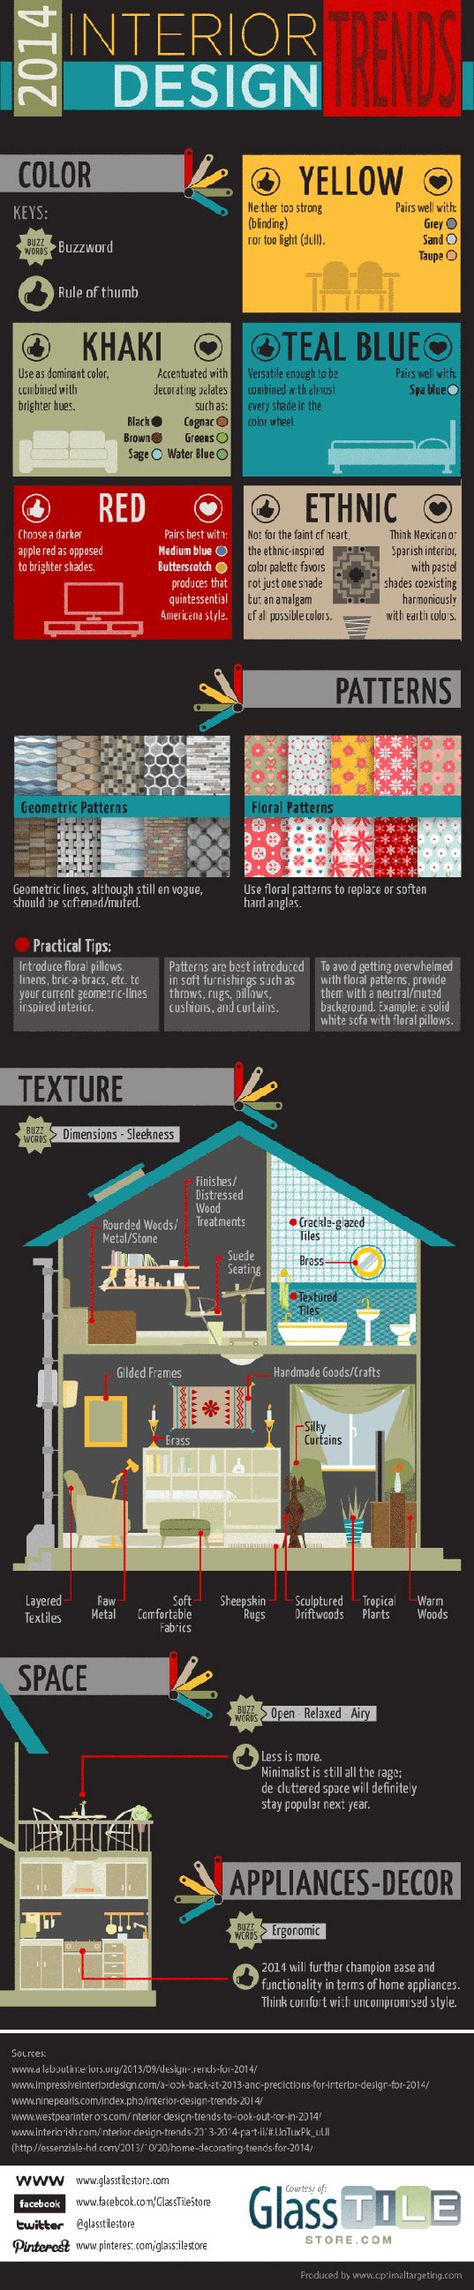 INFOGRAPHIC: Interior Design Trends for 2014